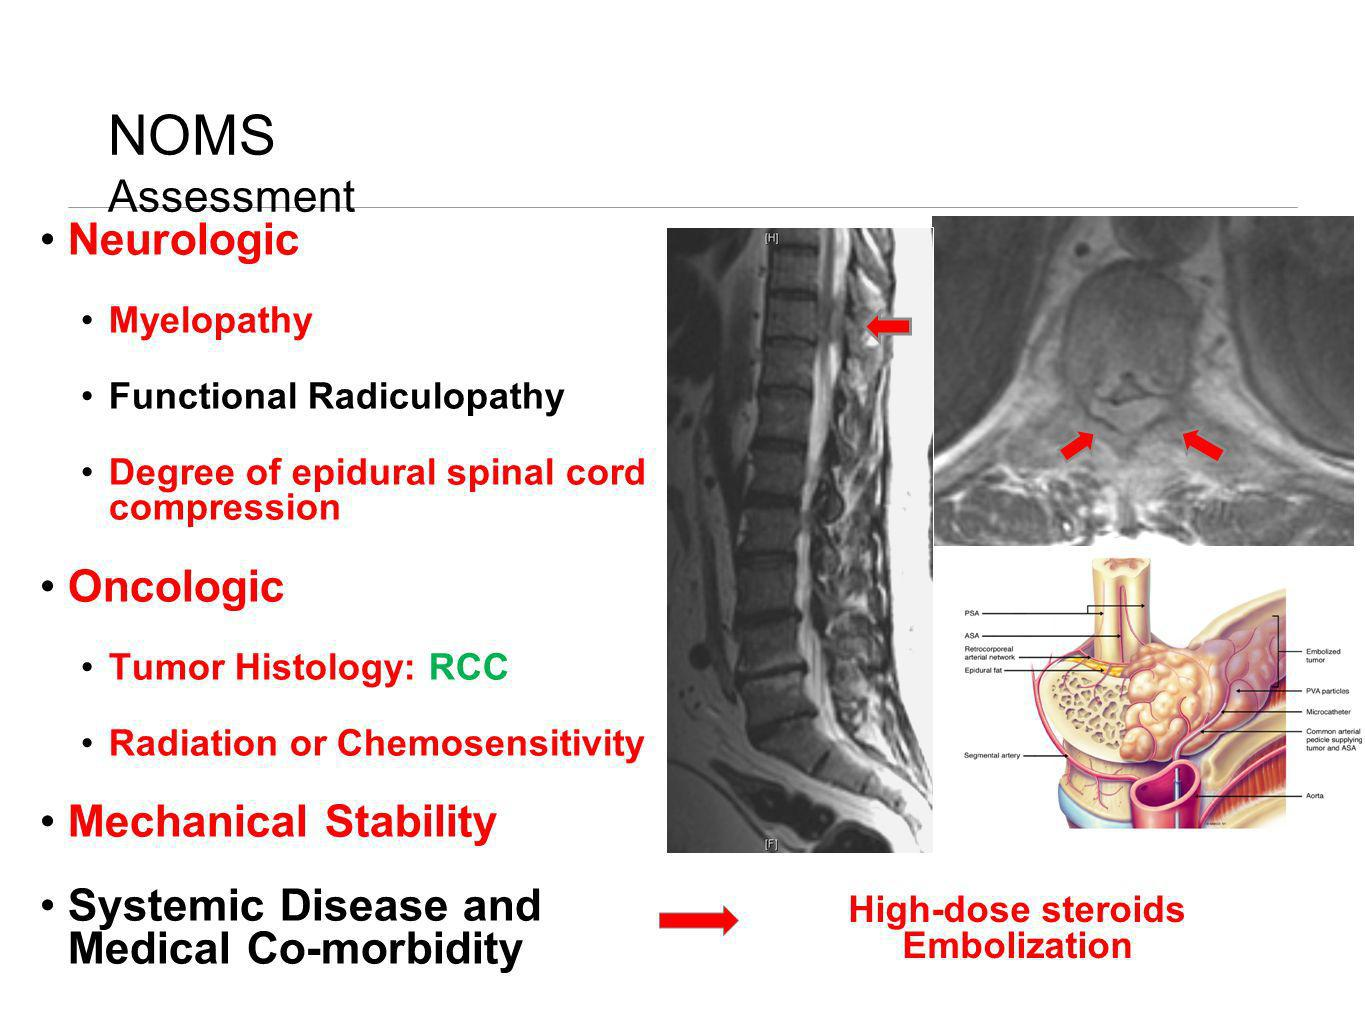 NOMS Assessment Neurologic Oncologic Mechanical Stability